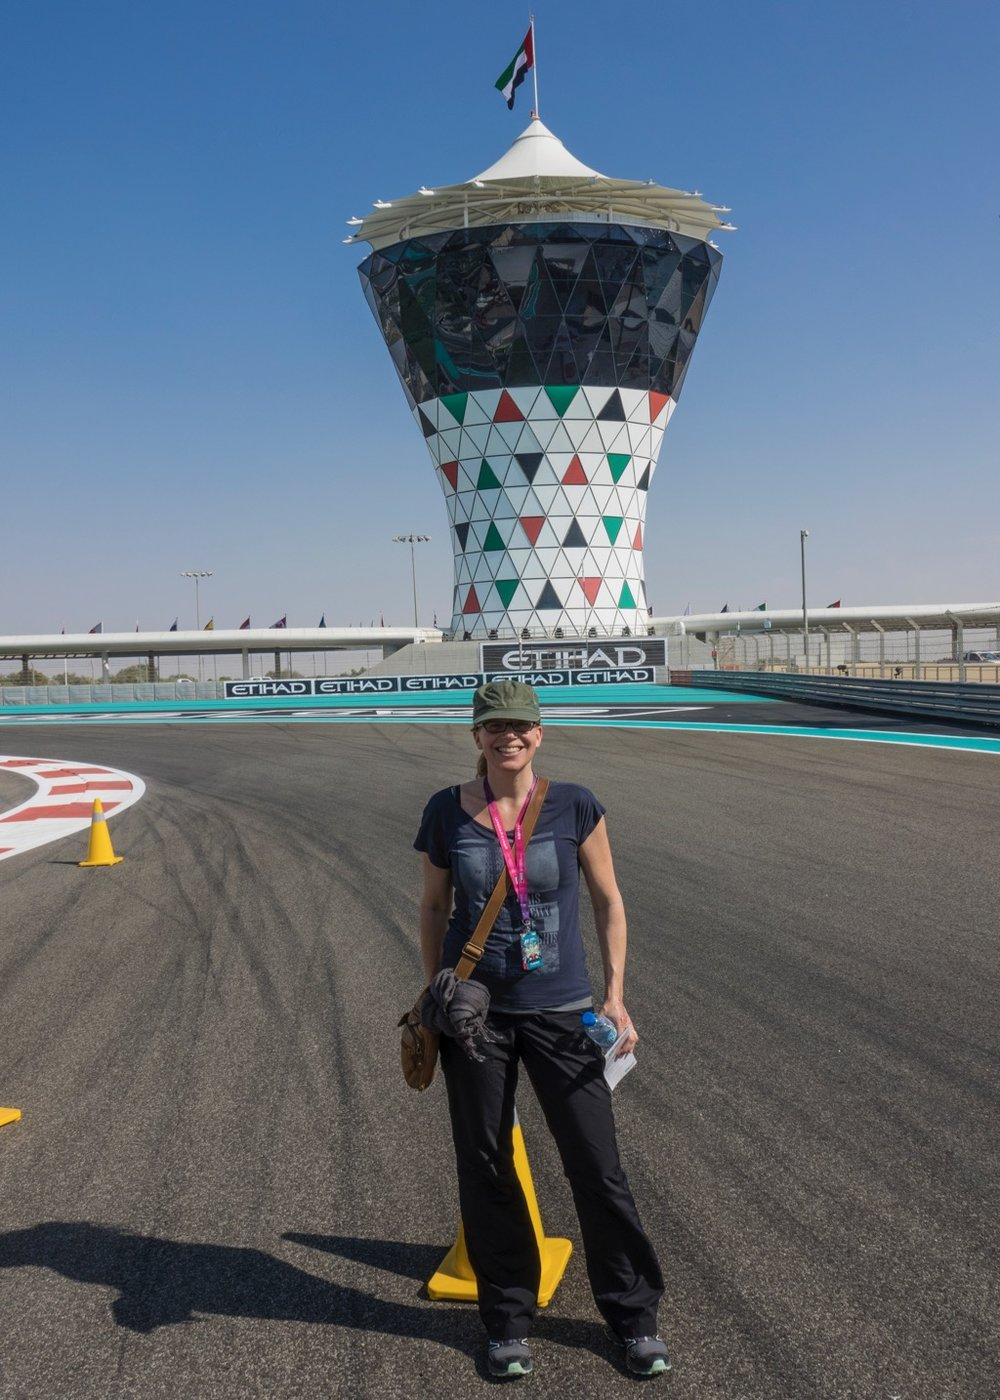 Justine on the track at the Abu Dhabi Grand Prix